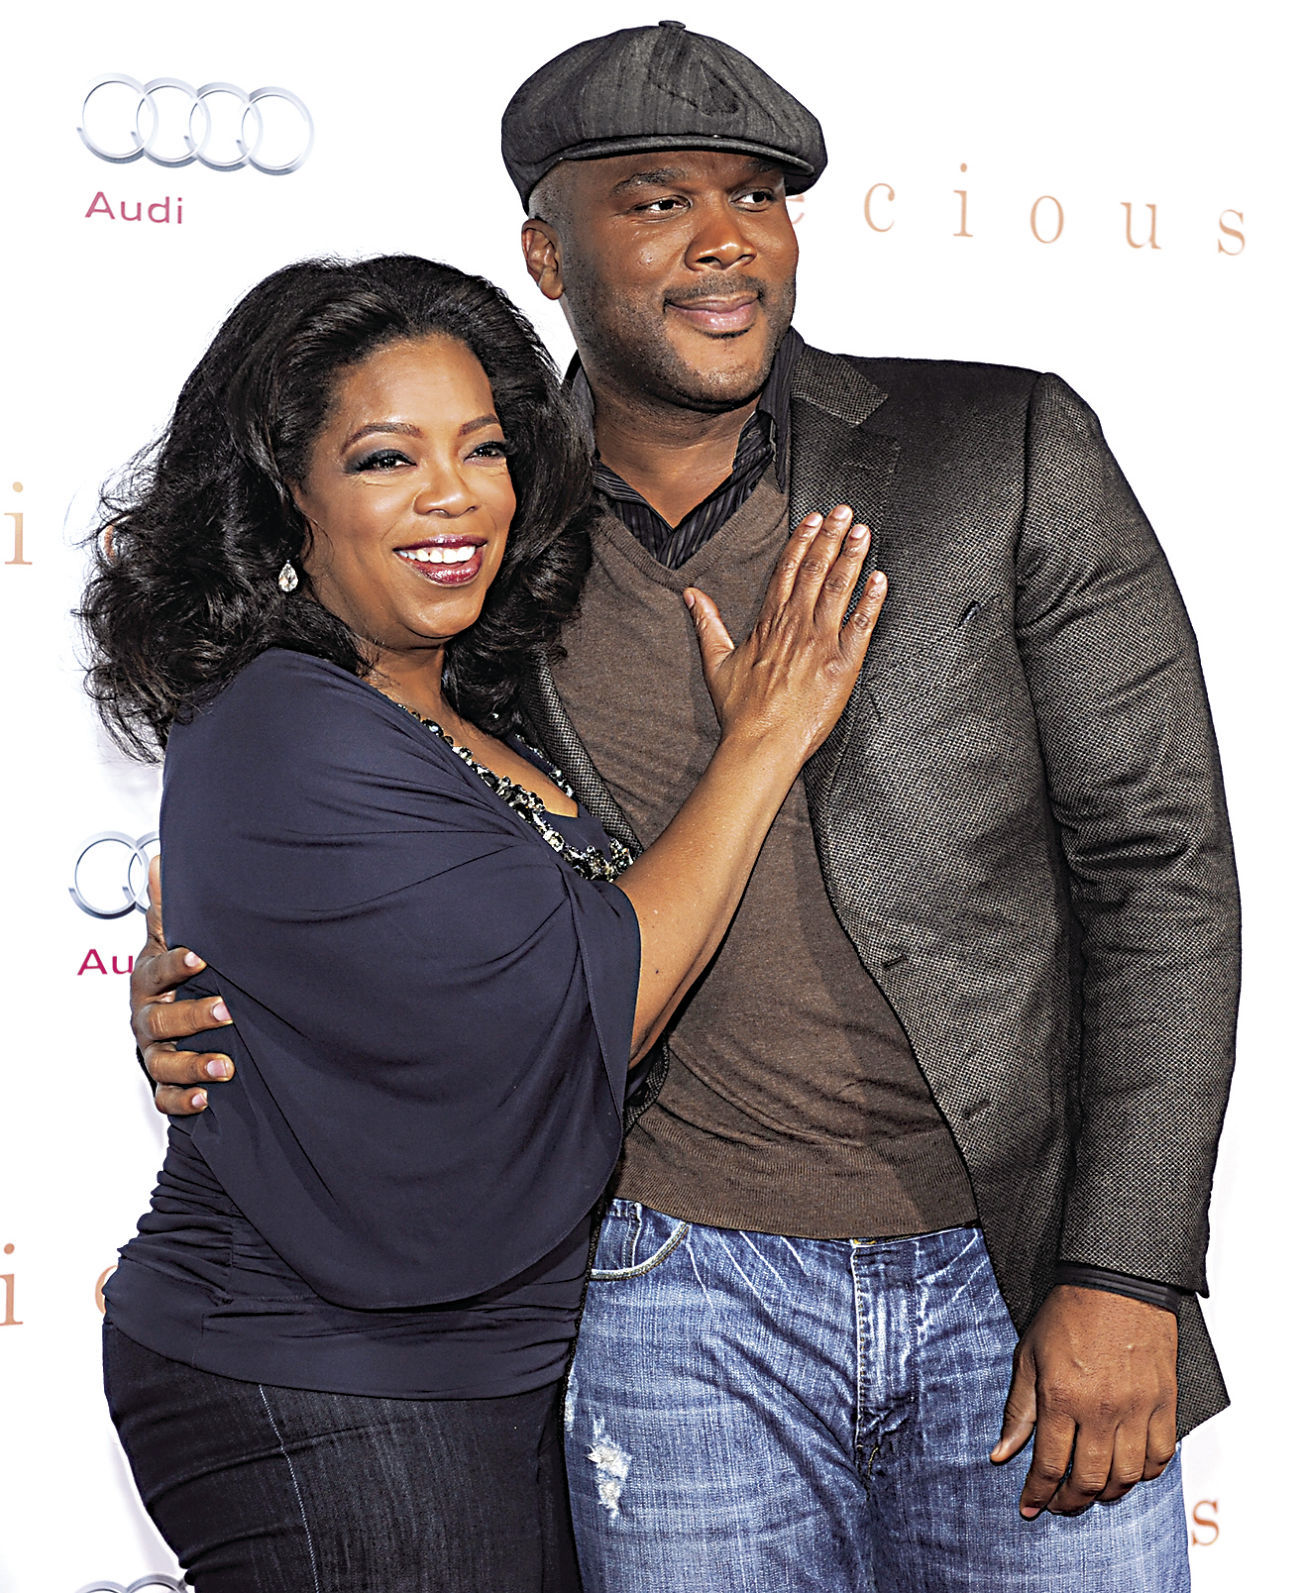 Oprah and tyler perry dating